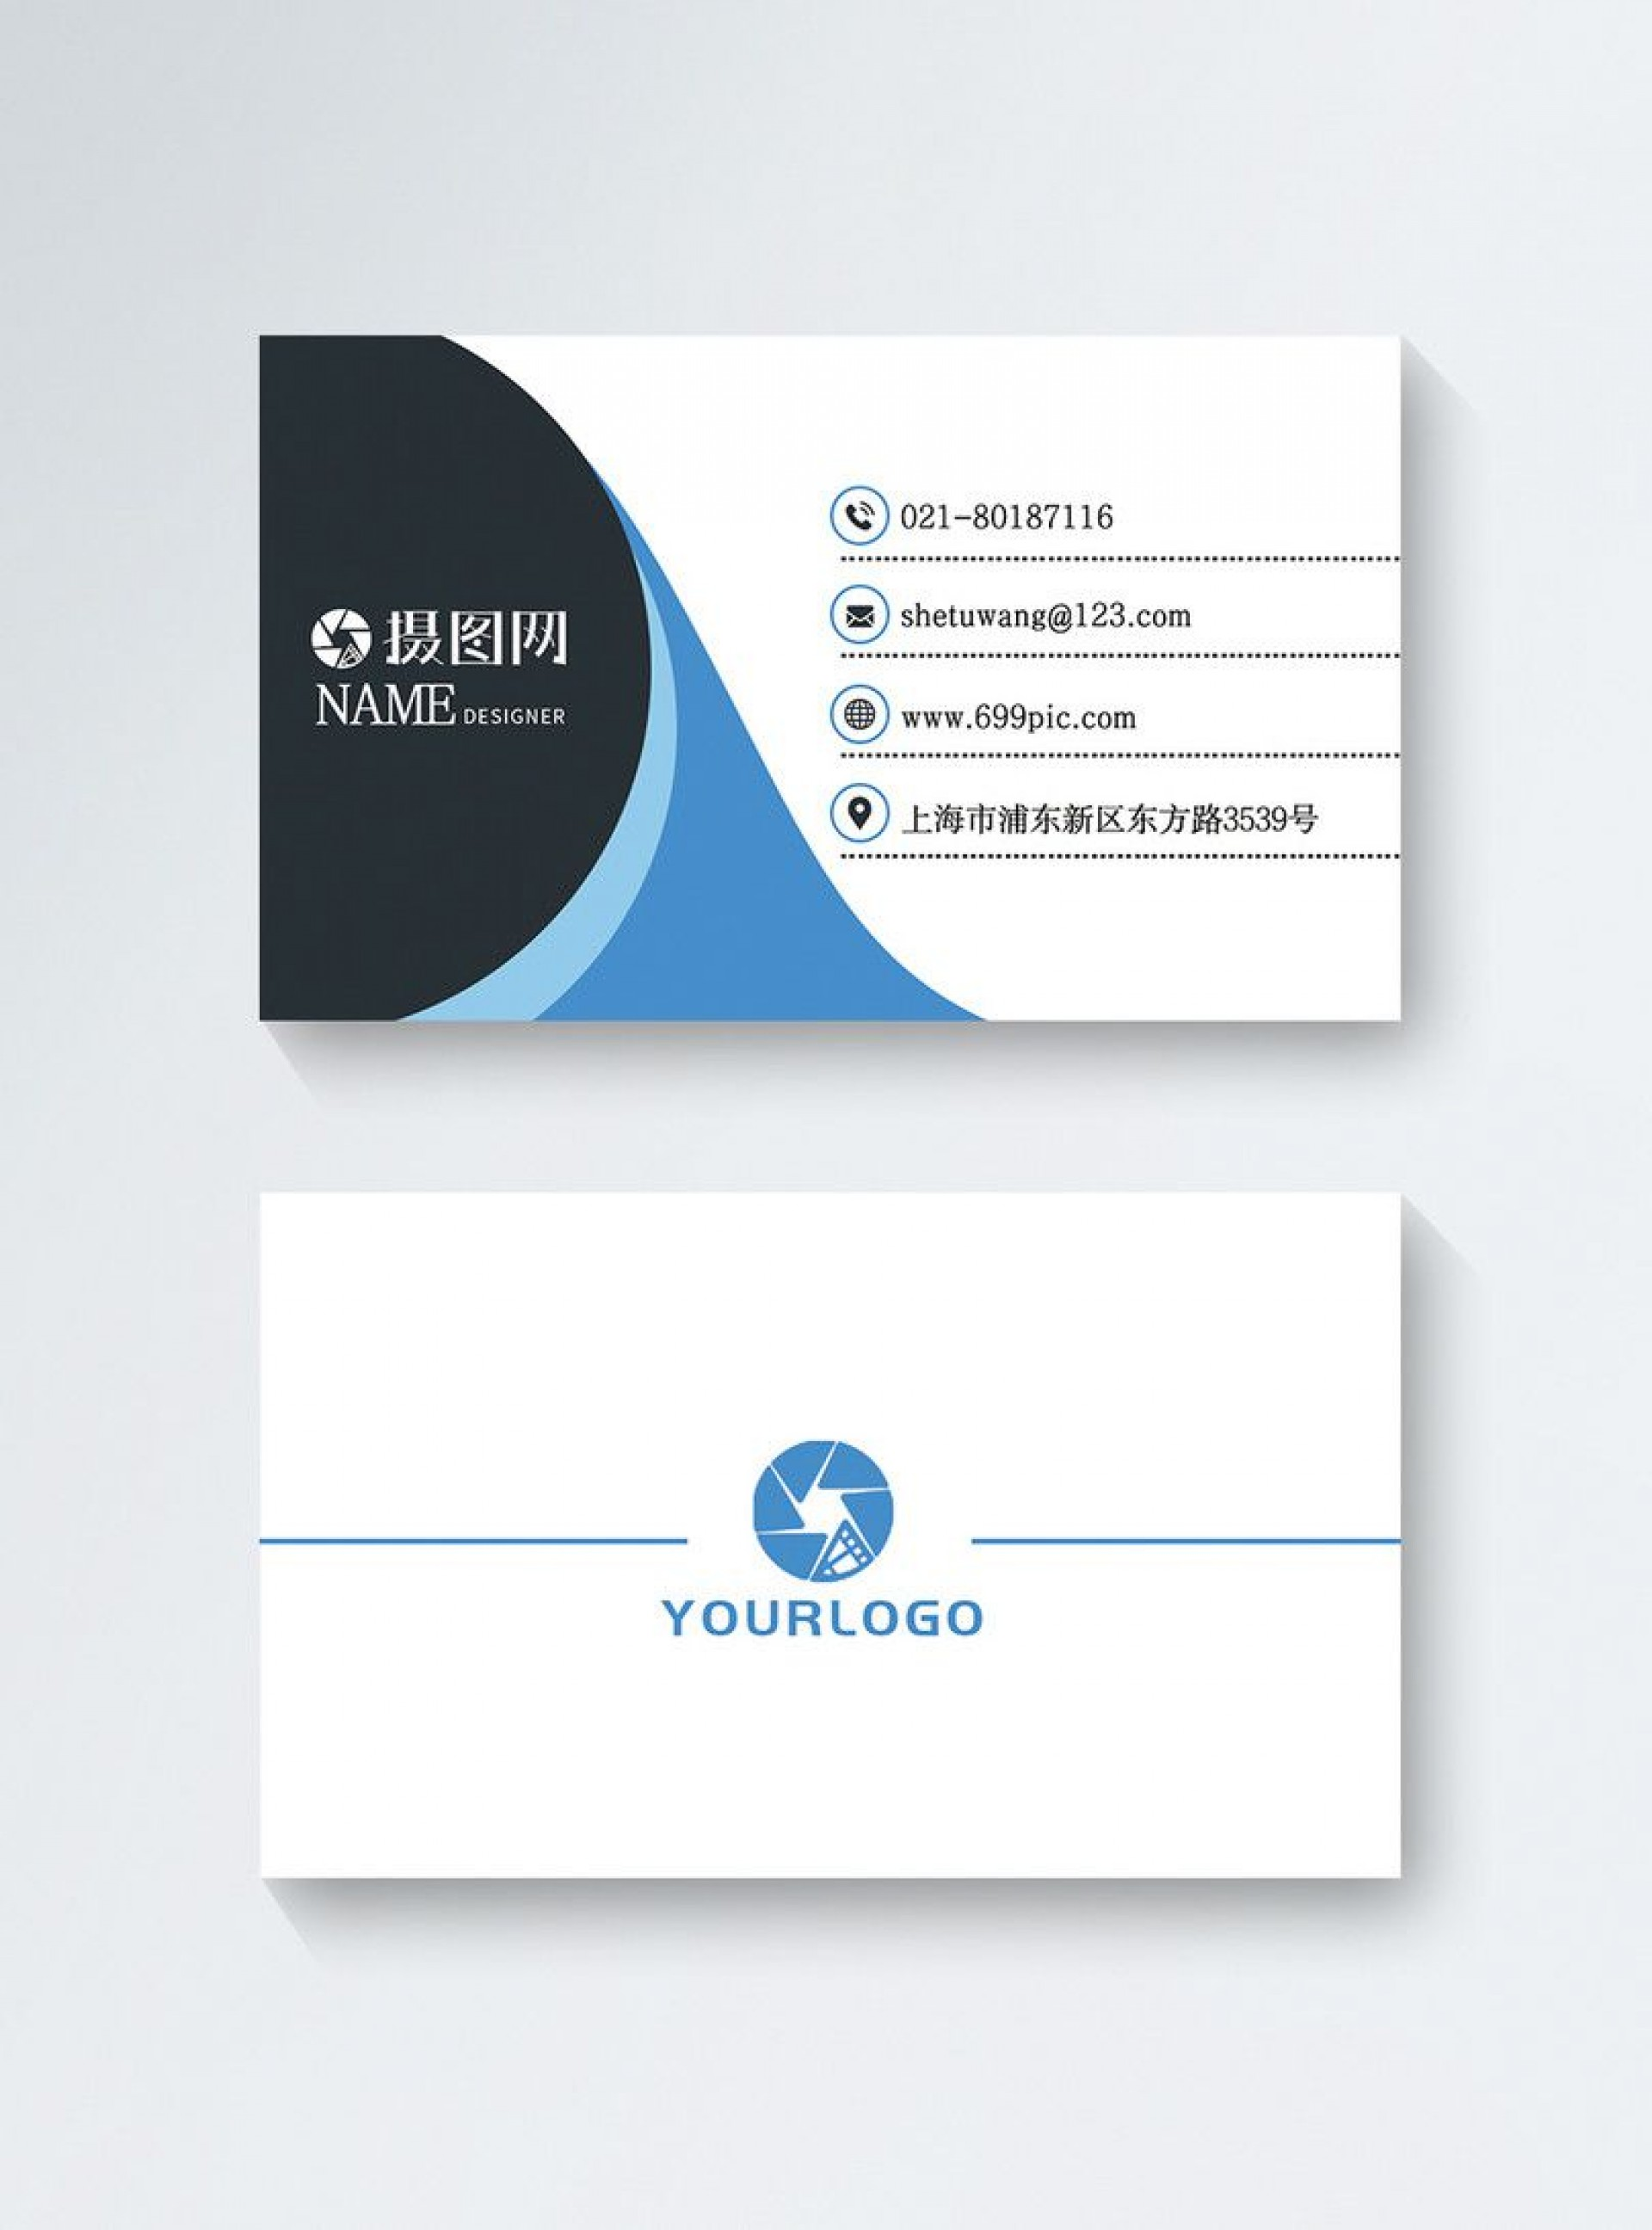 005 Phenomenal Free Download Busines Card Template High Definition  For Microsoft Publisher Photoshop Powerpoint1920